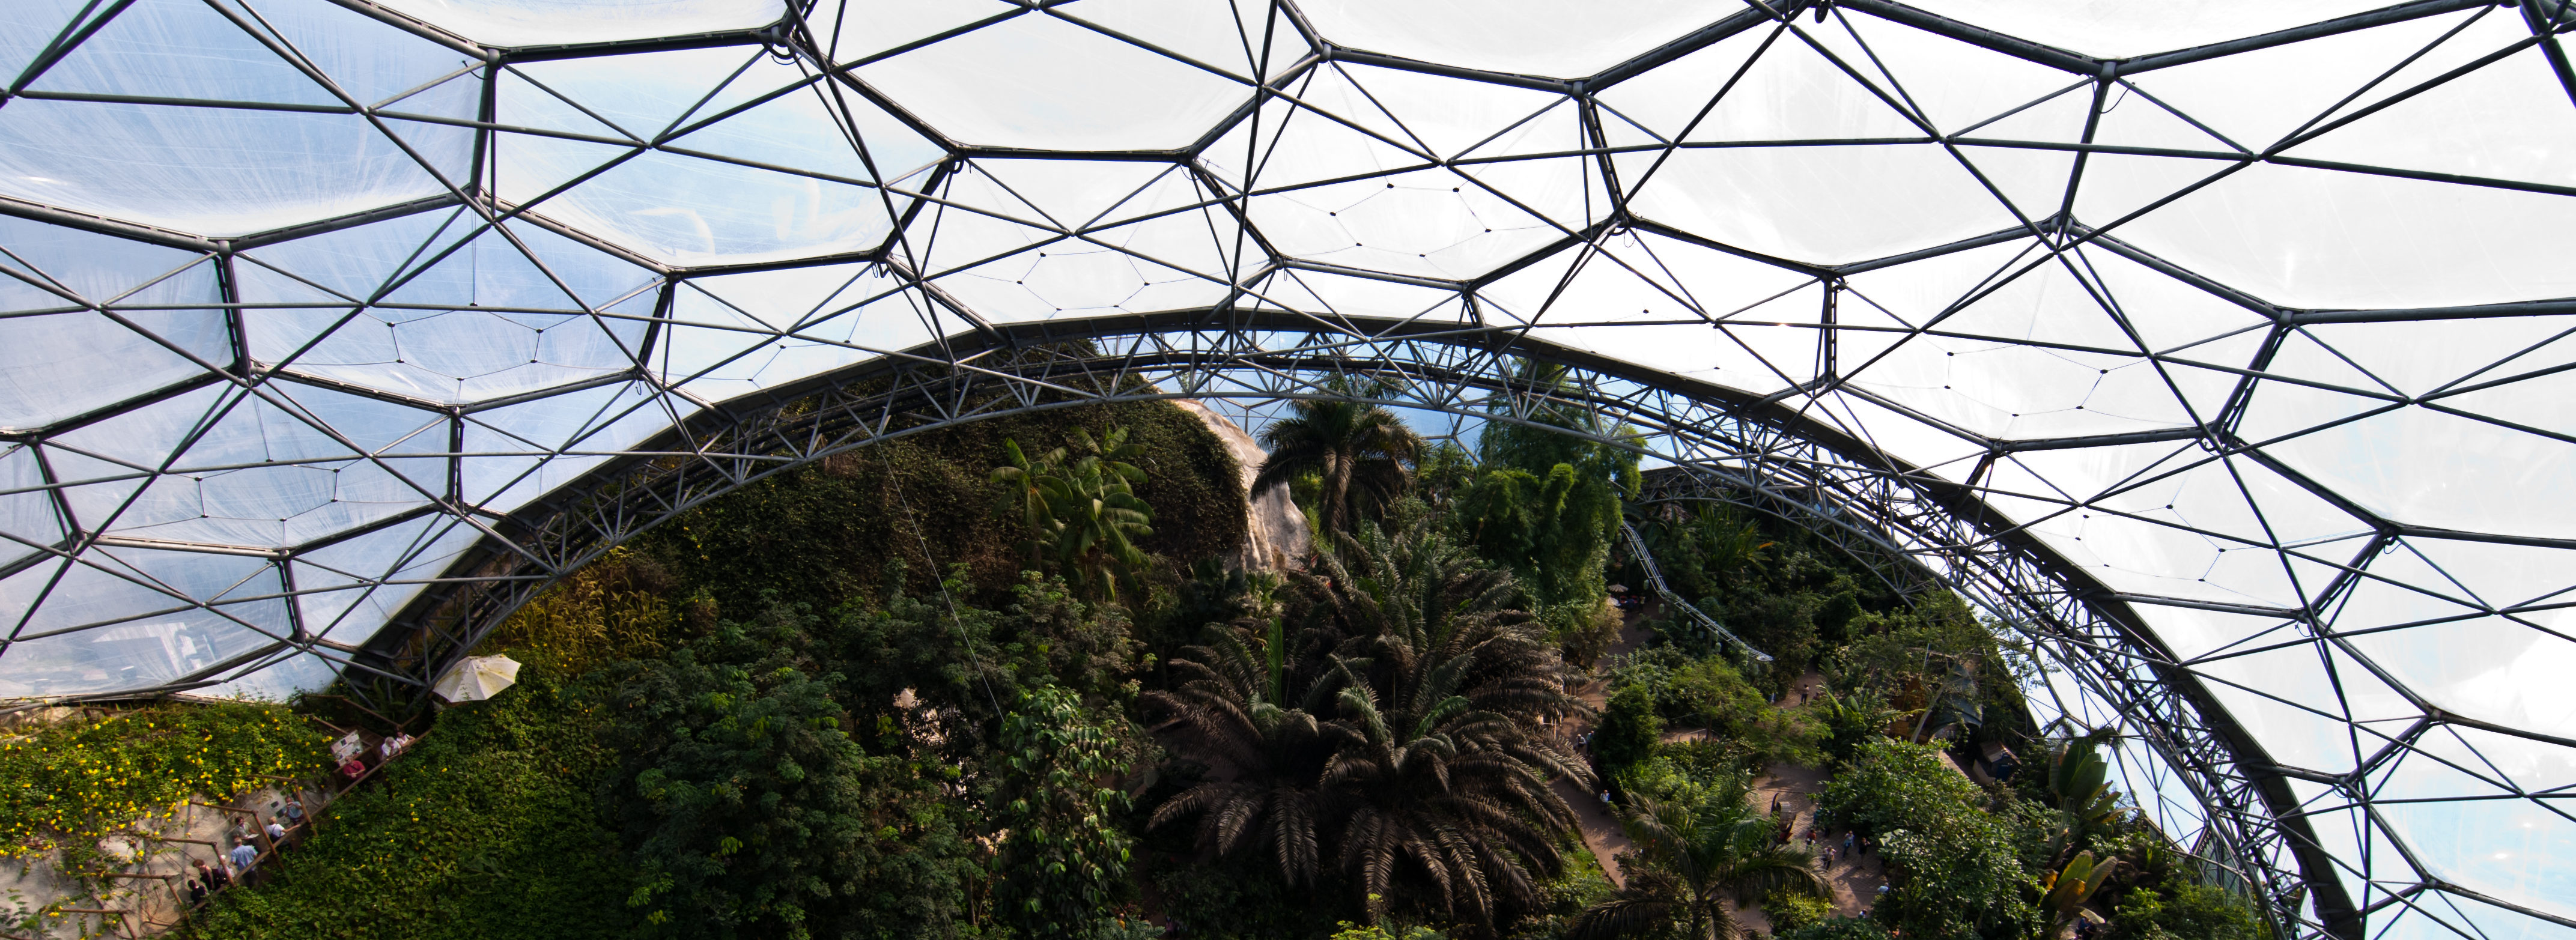 UK Climate Services booklet. Photo cred - Tim Parkinson, View from platform @ Eden Project, Cornwall